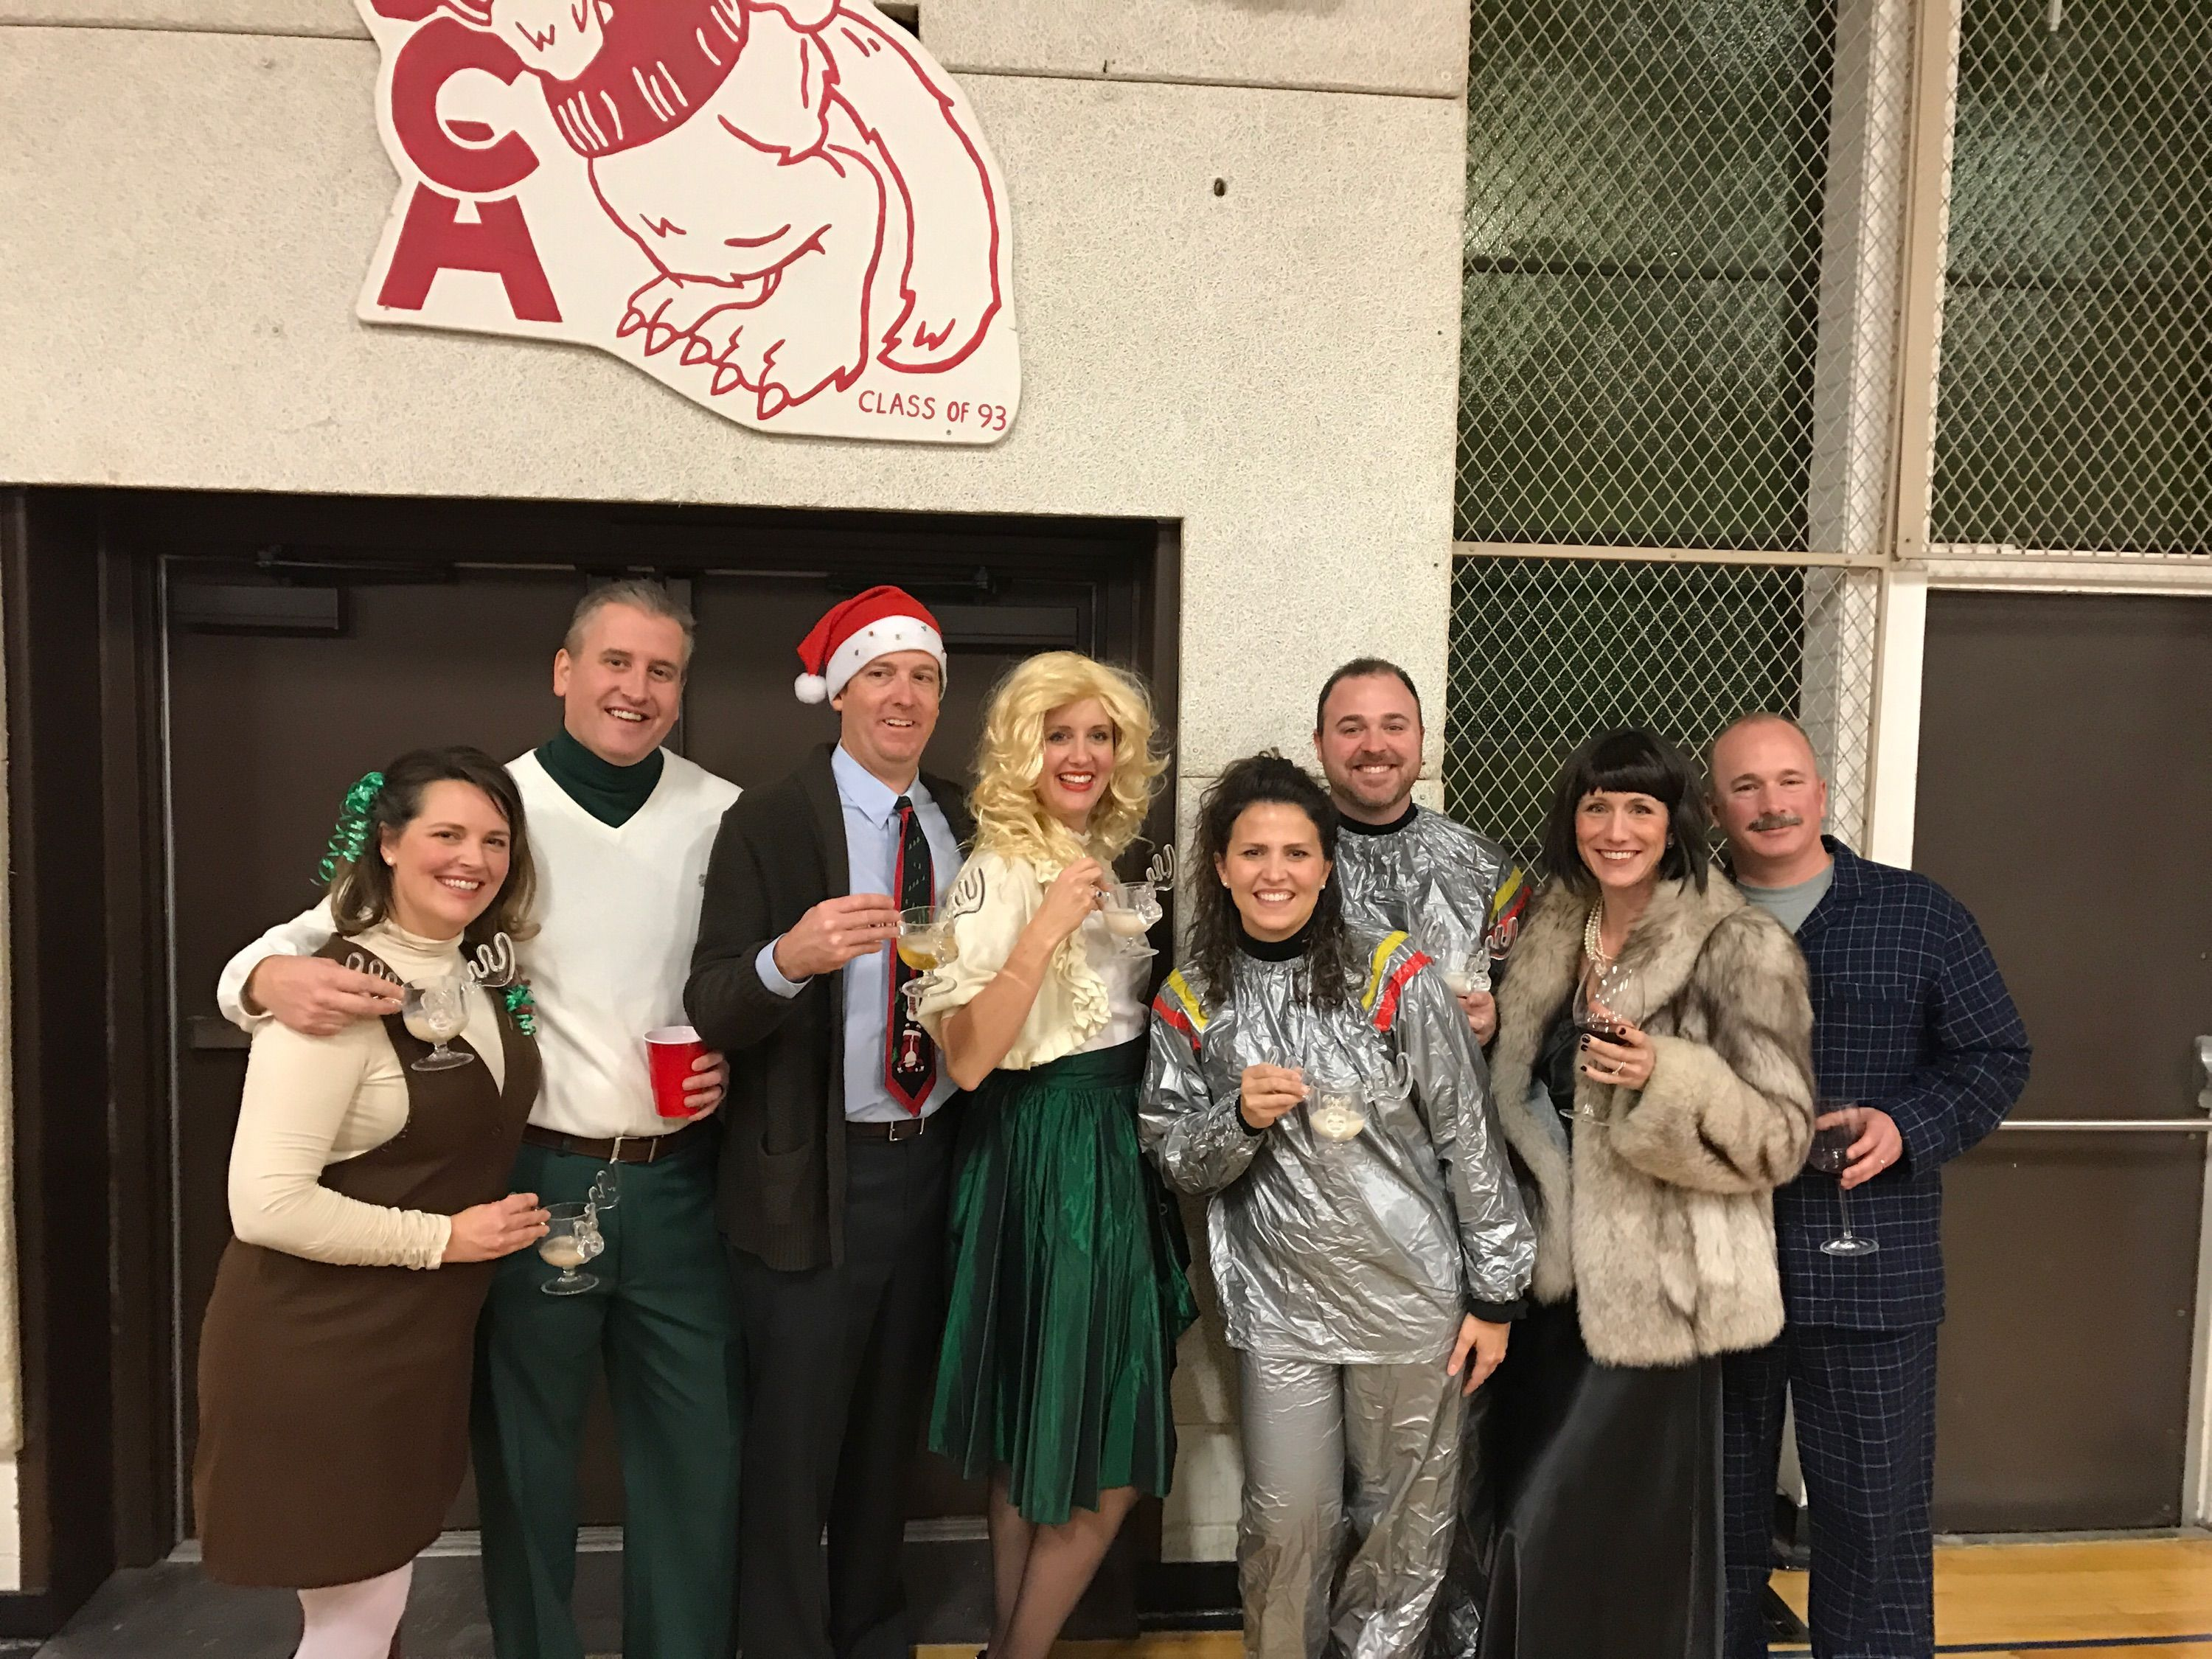 National Lampoons Christmas Vacation costumes on point